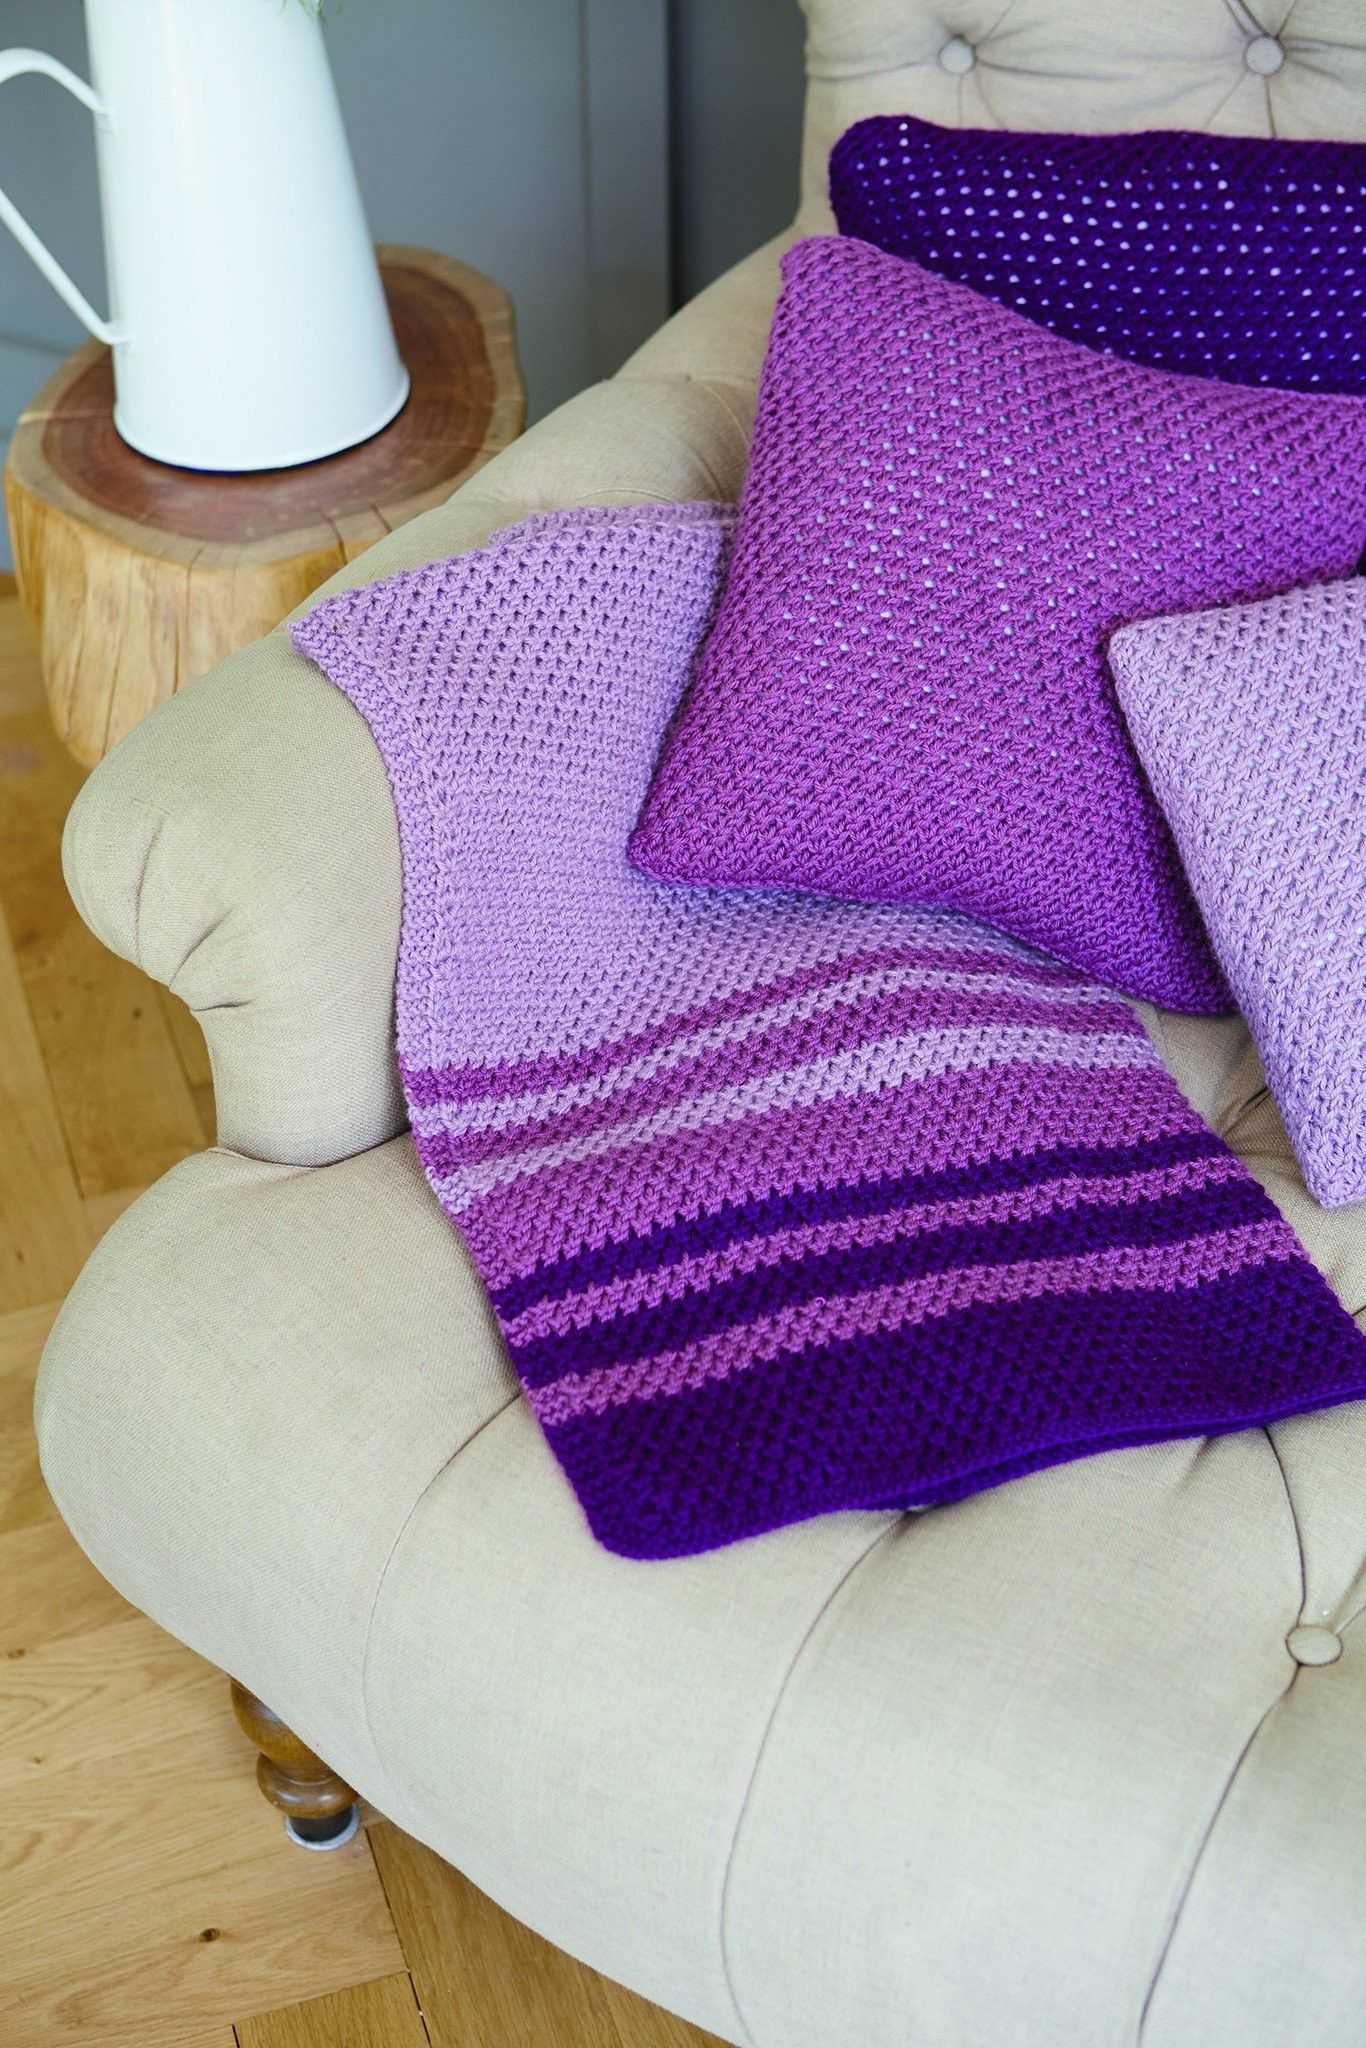 Striped Blanket And Cushion Cover Knitting Patterns | The ...